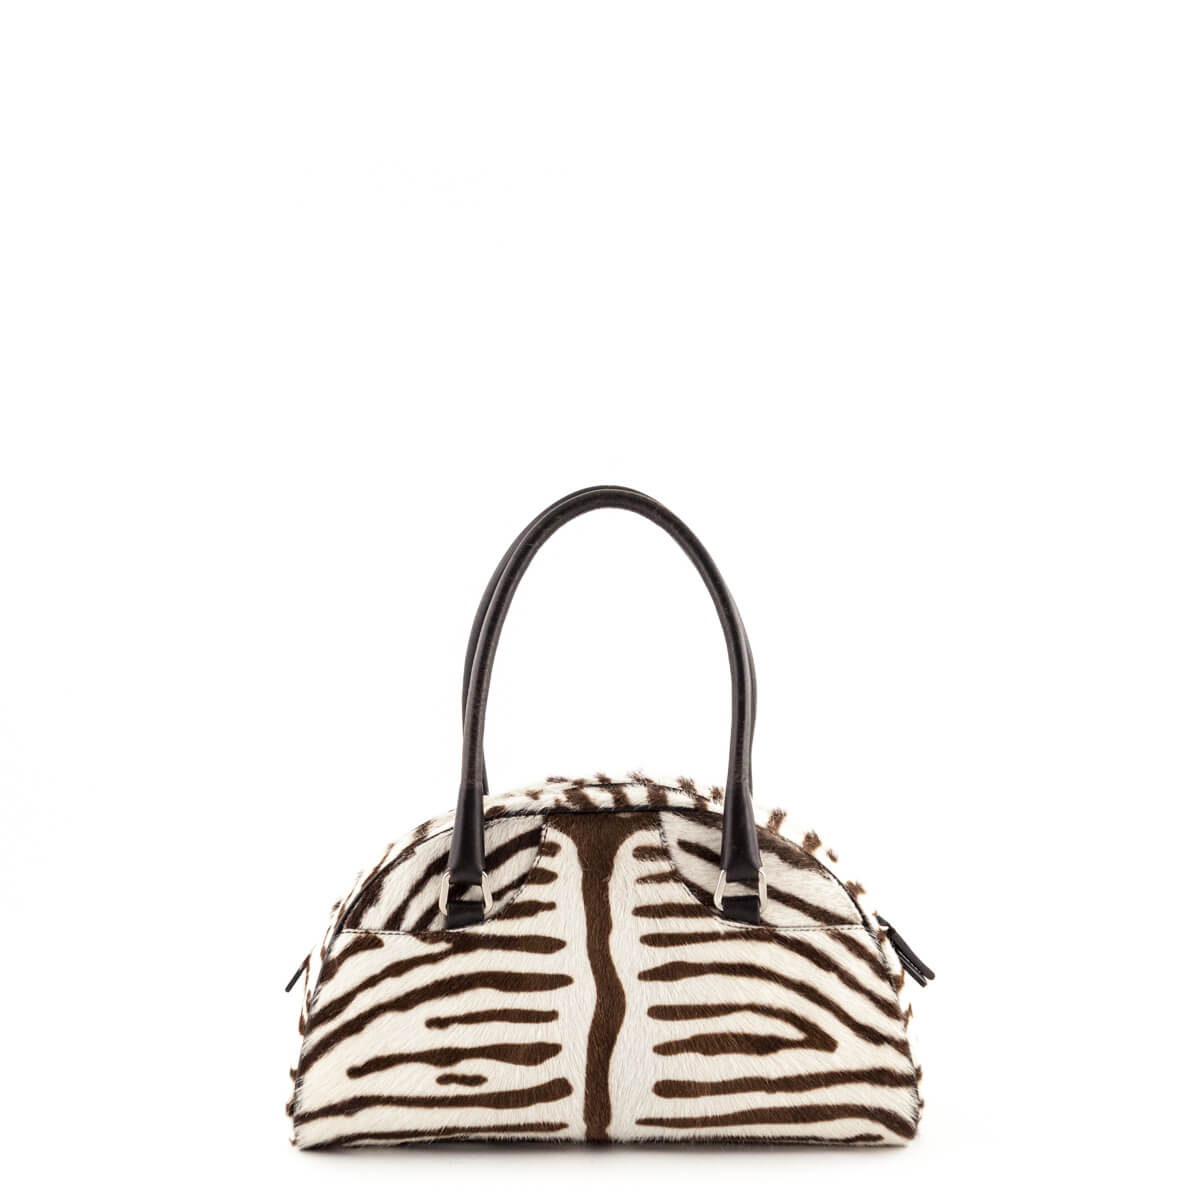 55aa4d9b9329 ... czech prada printed brown zebra animal patch top handle bag love that  bag preowned authentic d090e